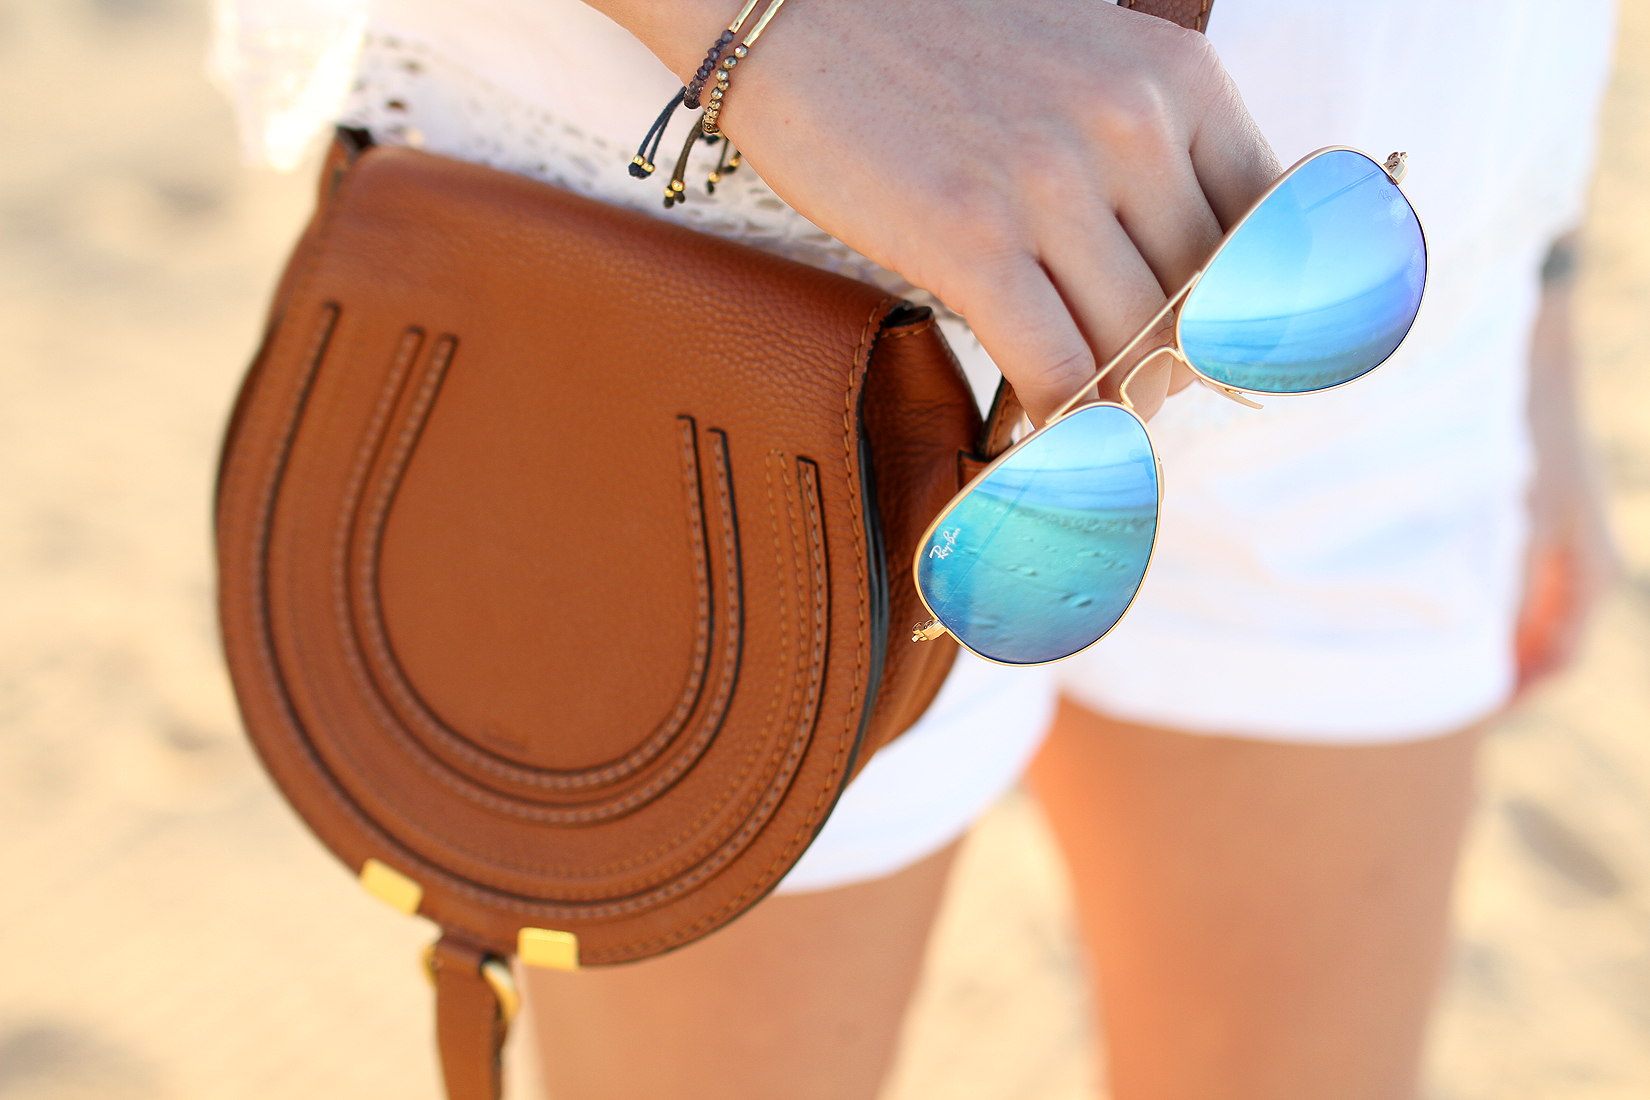 fashion-jackson-chloe-marcie-crossbody-tan-ray-ban-blue-mirror-sunglasses